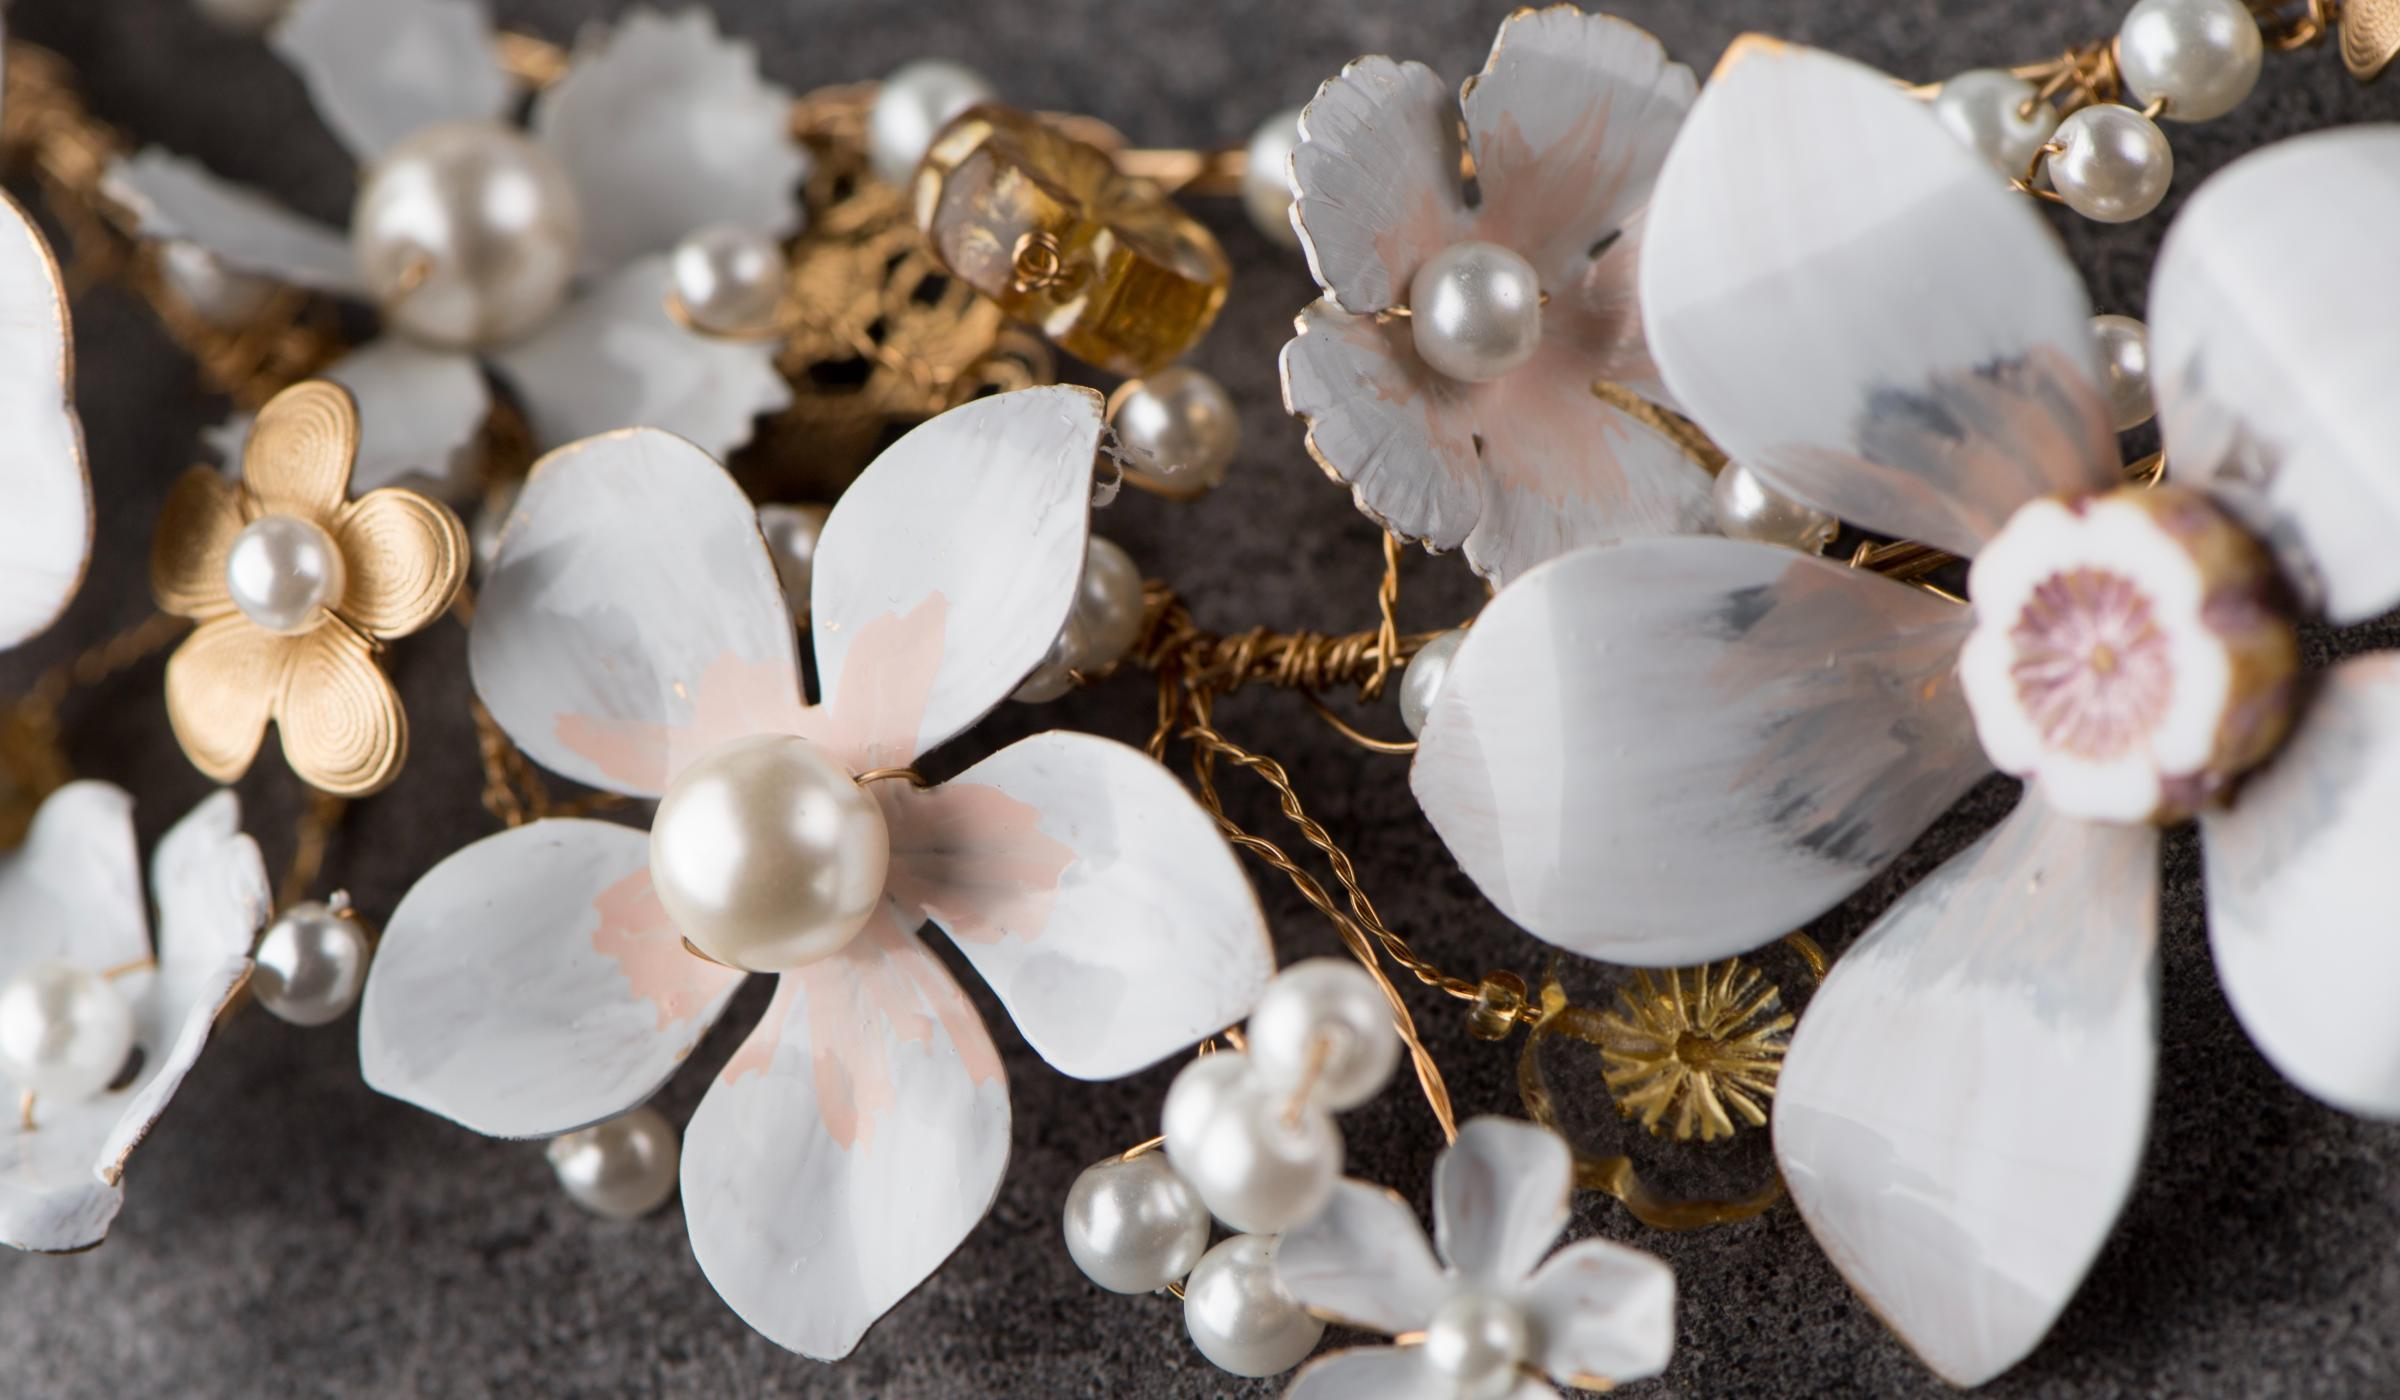 couture bridal accessories handcrafted wedding pieces elegant wedding jewelry